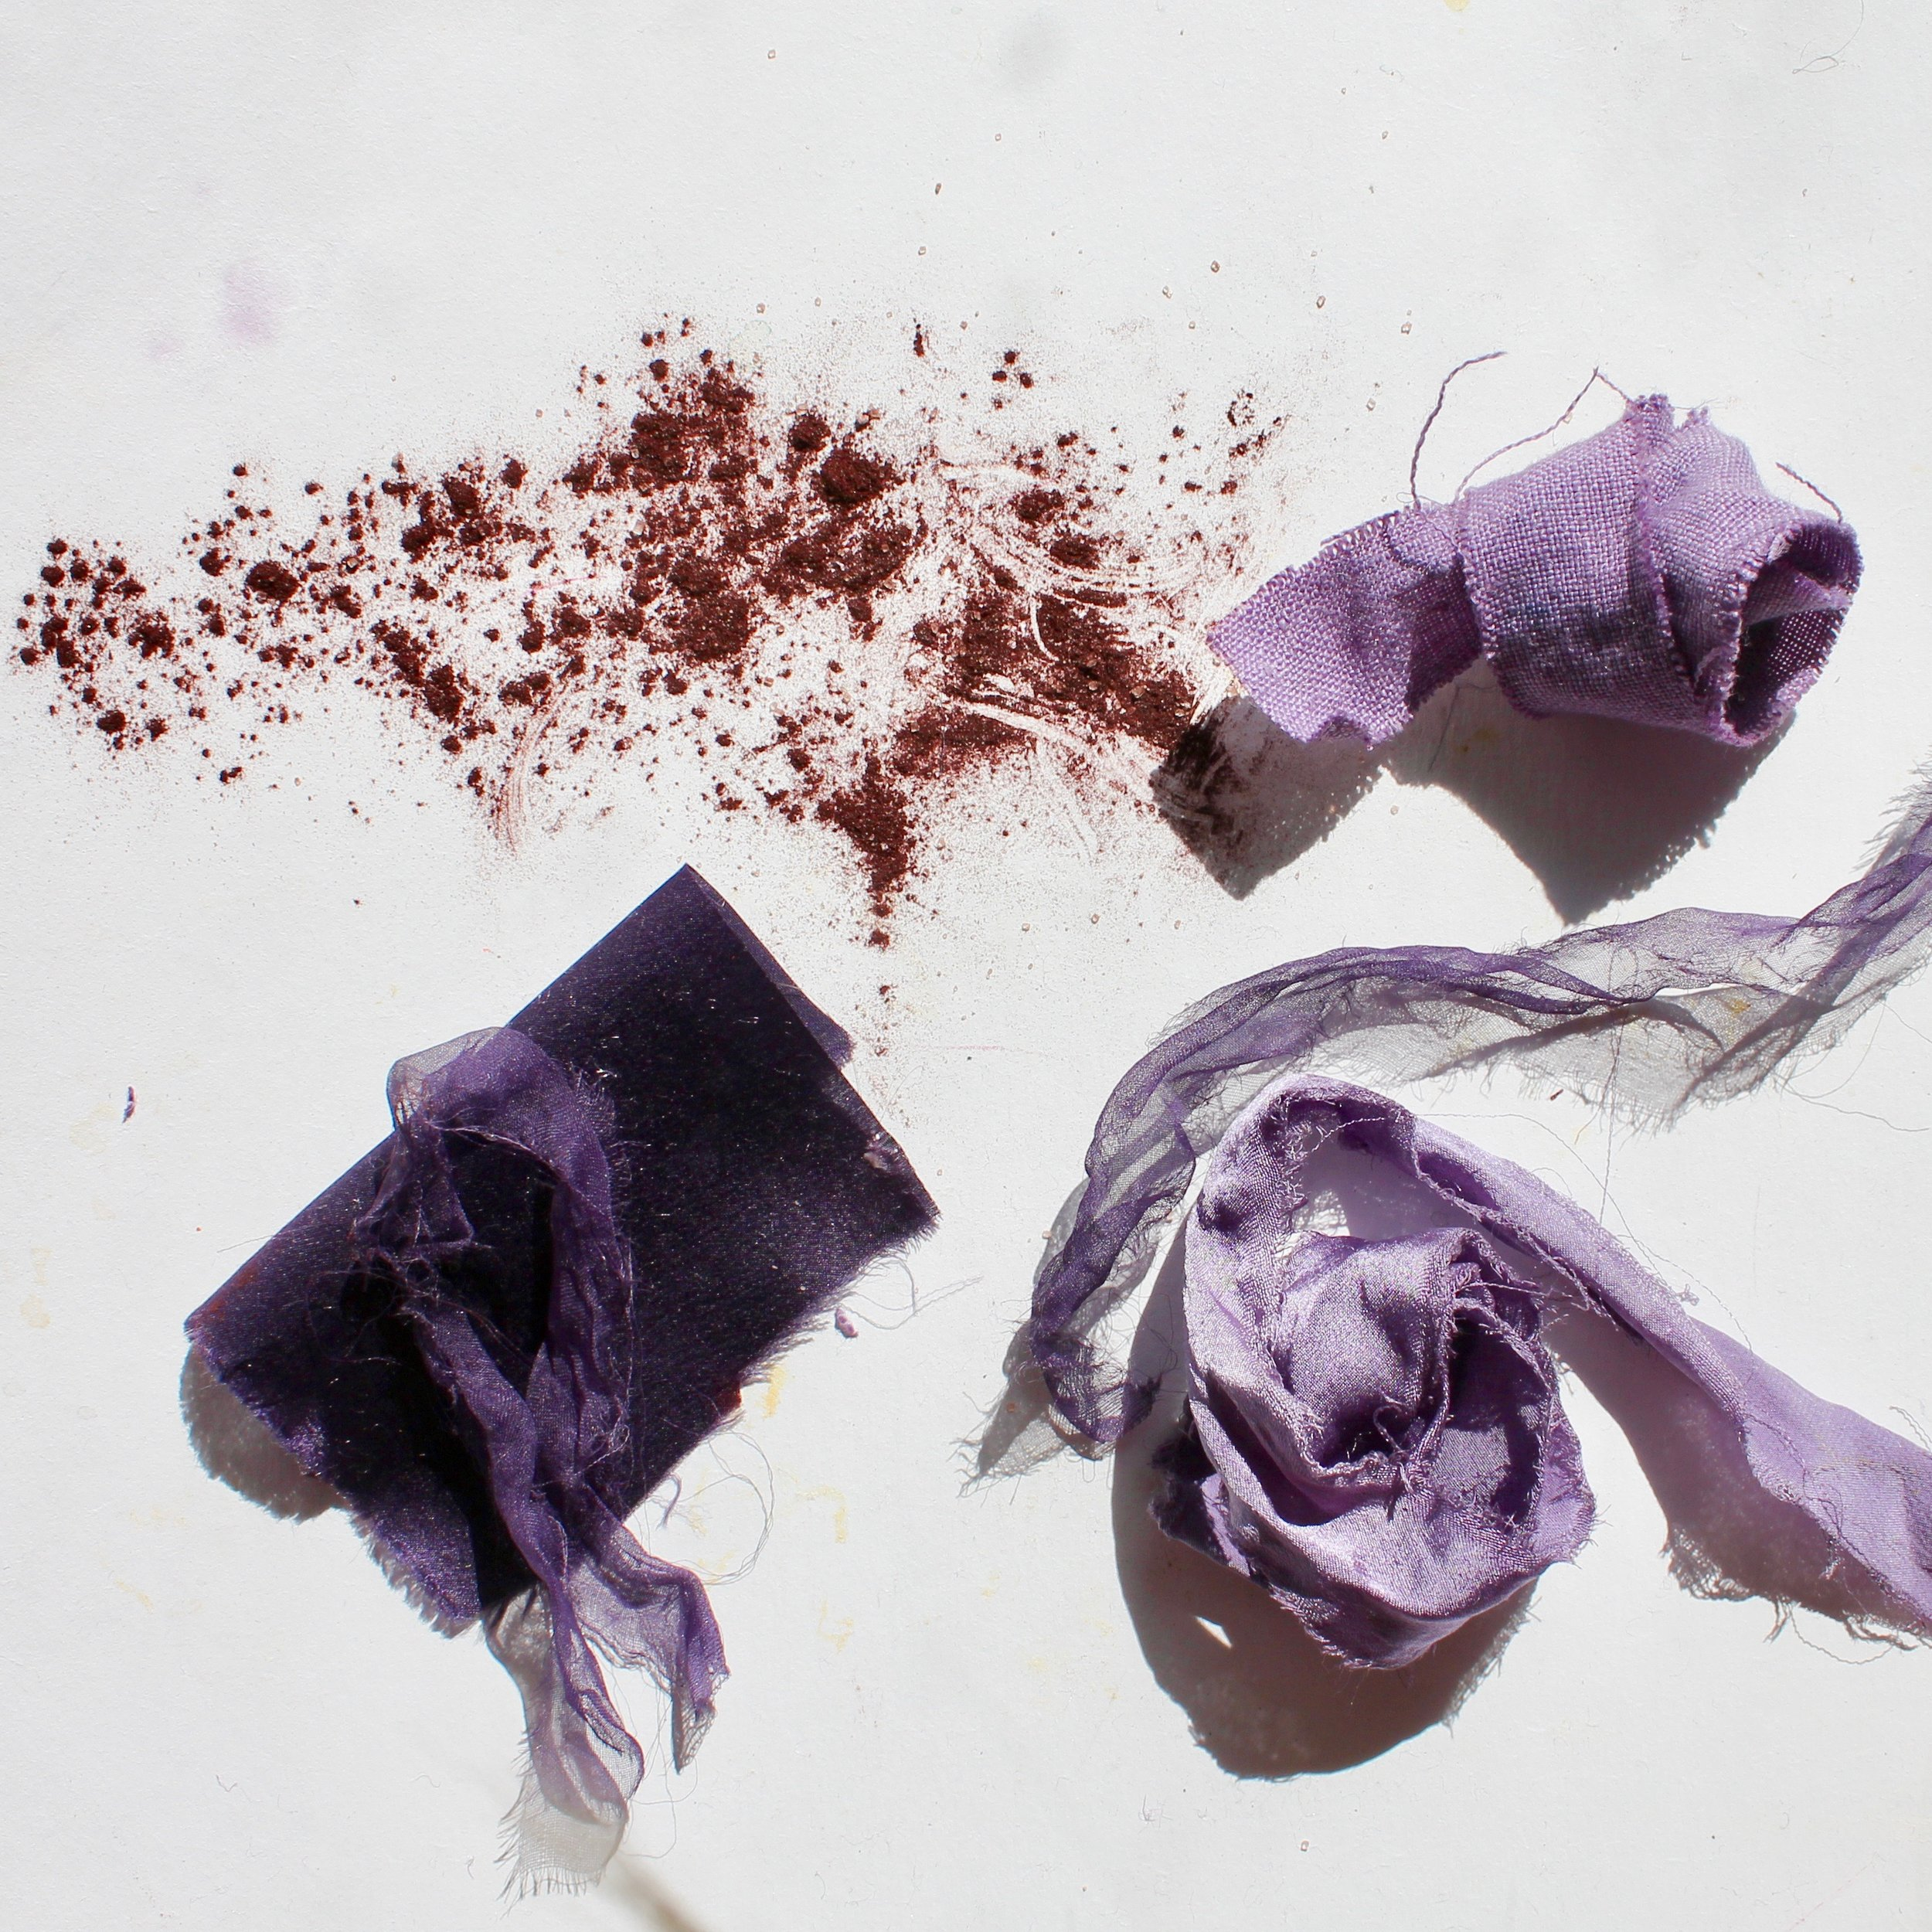 Logwood  Logwood dye comes from the heartwood of the tropical Logwood Tree. It yields many shades of purple, from lilac to a deep plum.